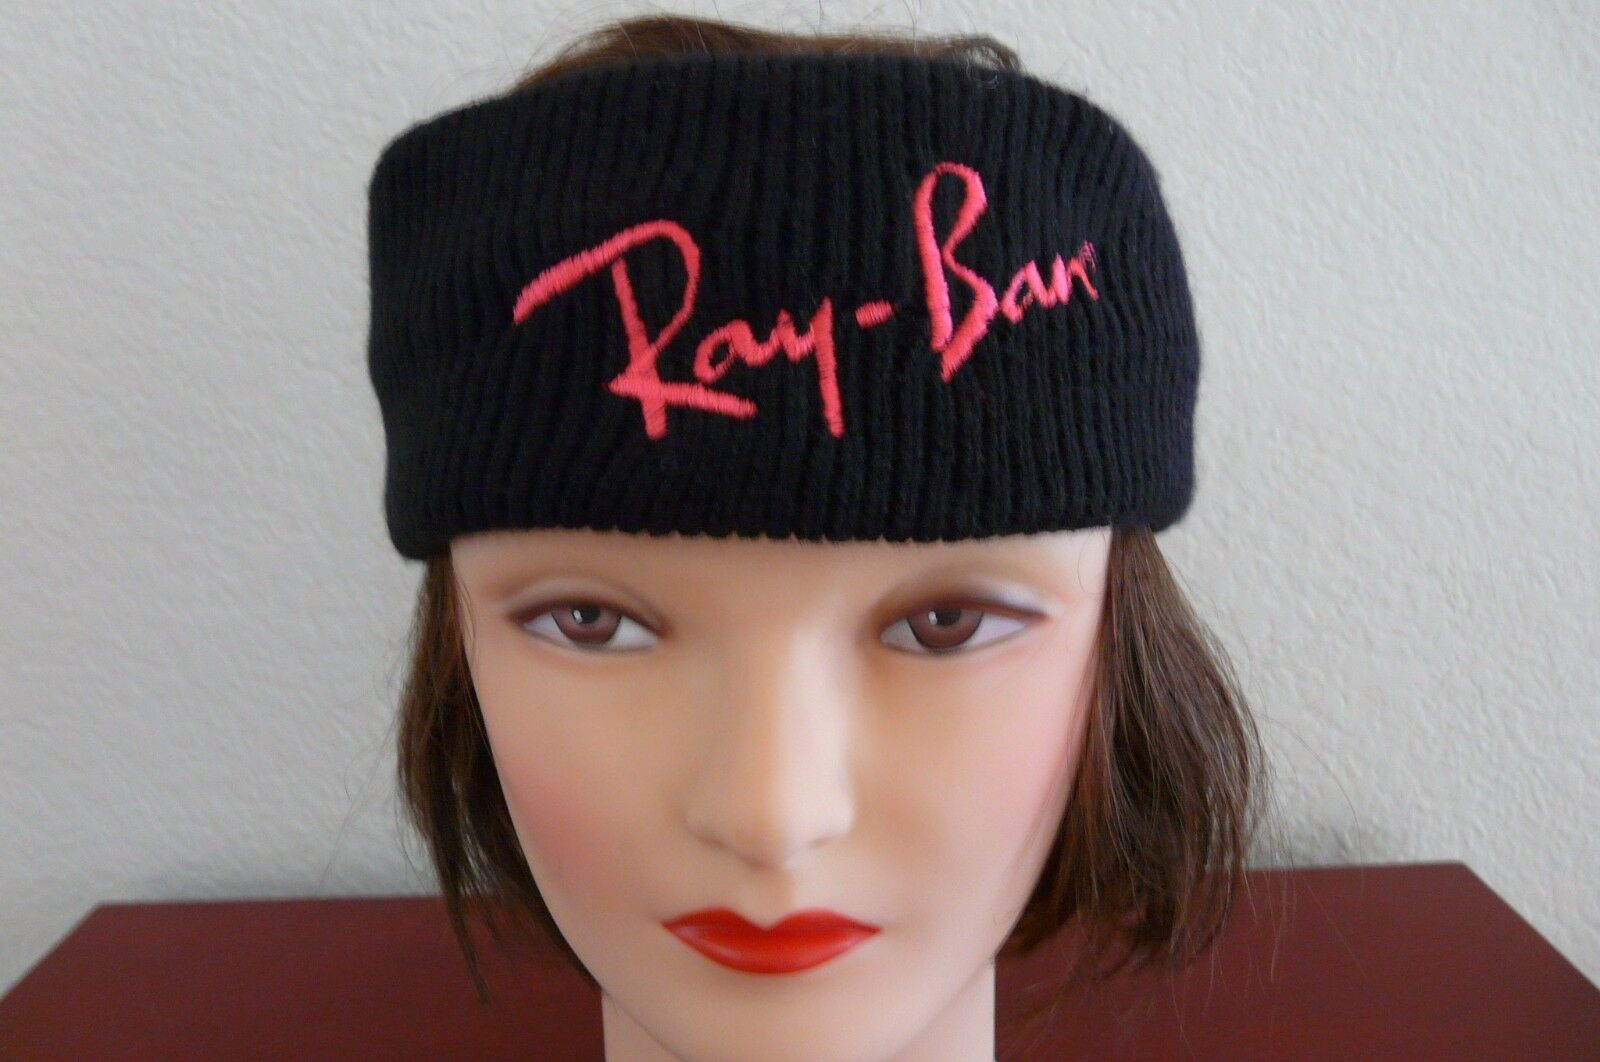 REY-BAN 100% ACRYLIC KNITTED LIGHT BLACK COLOR SWEATBAND OSF